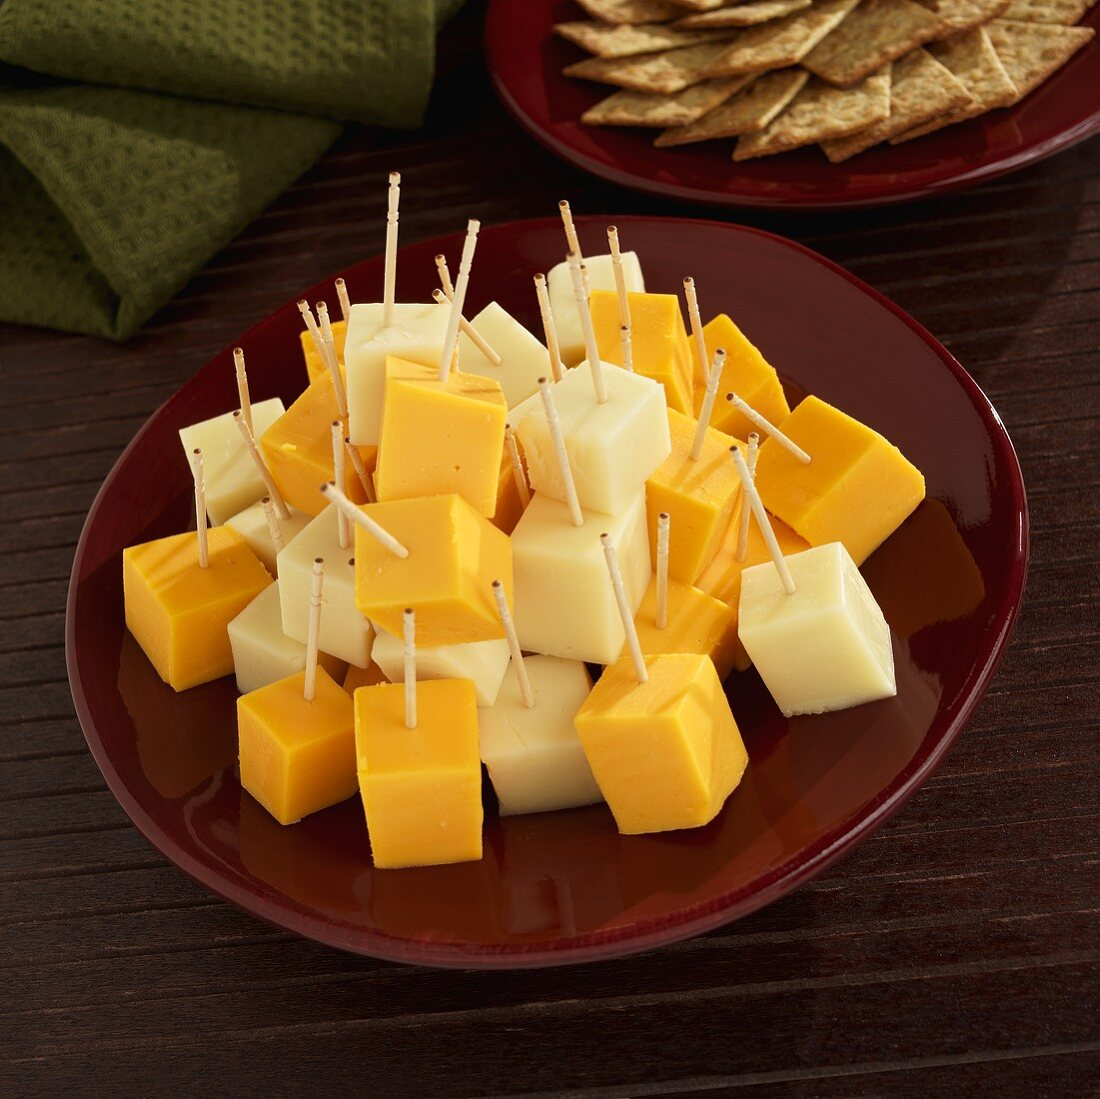 Cubed Yellow American Cheese and White Cheddar on Toothpicks